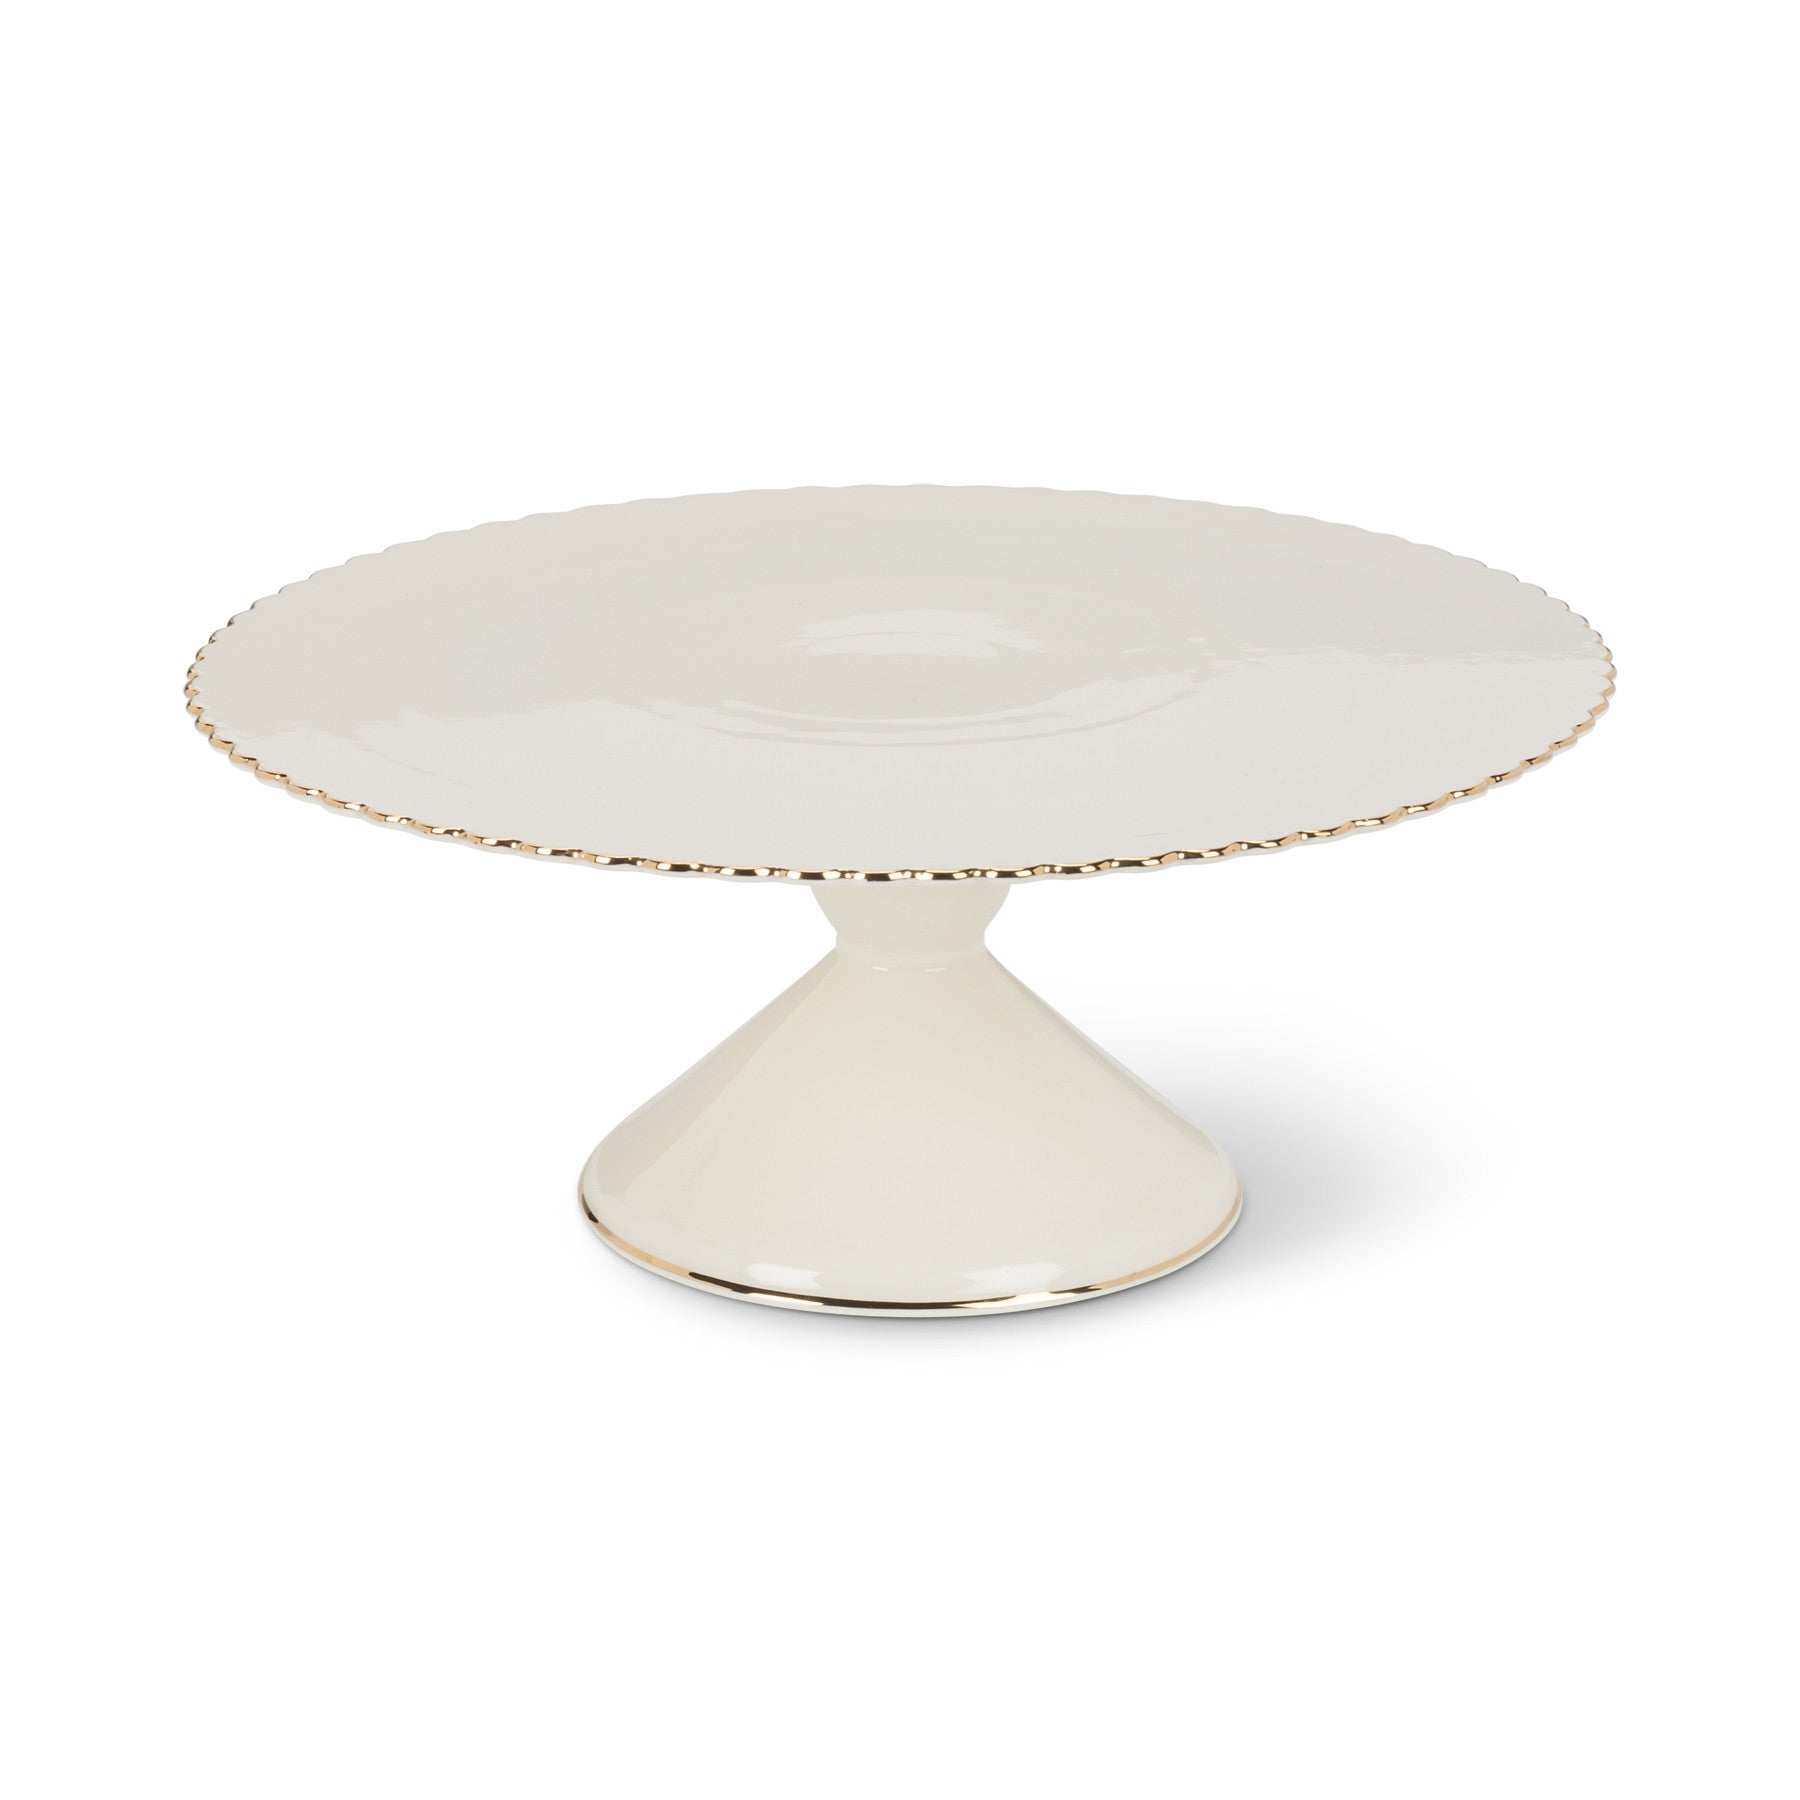 Gold Rim Pedestal Cake Stand - Medium, AC-Abbott Collection, Putti Fine Furnishings